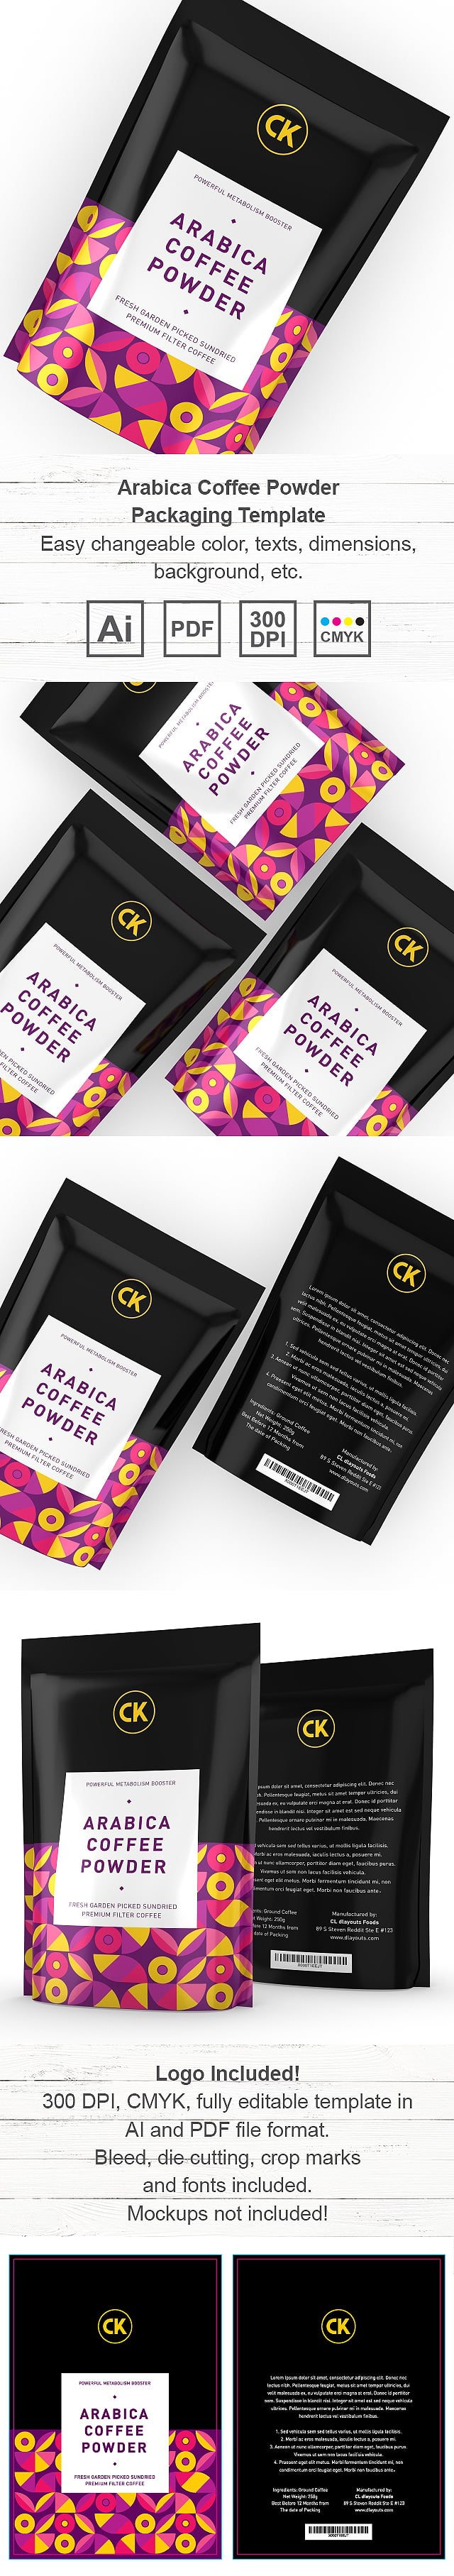 Arabica Filtered Coffee Powder Packaging Template